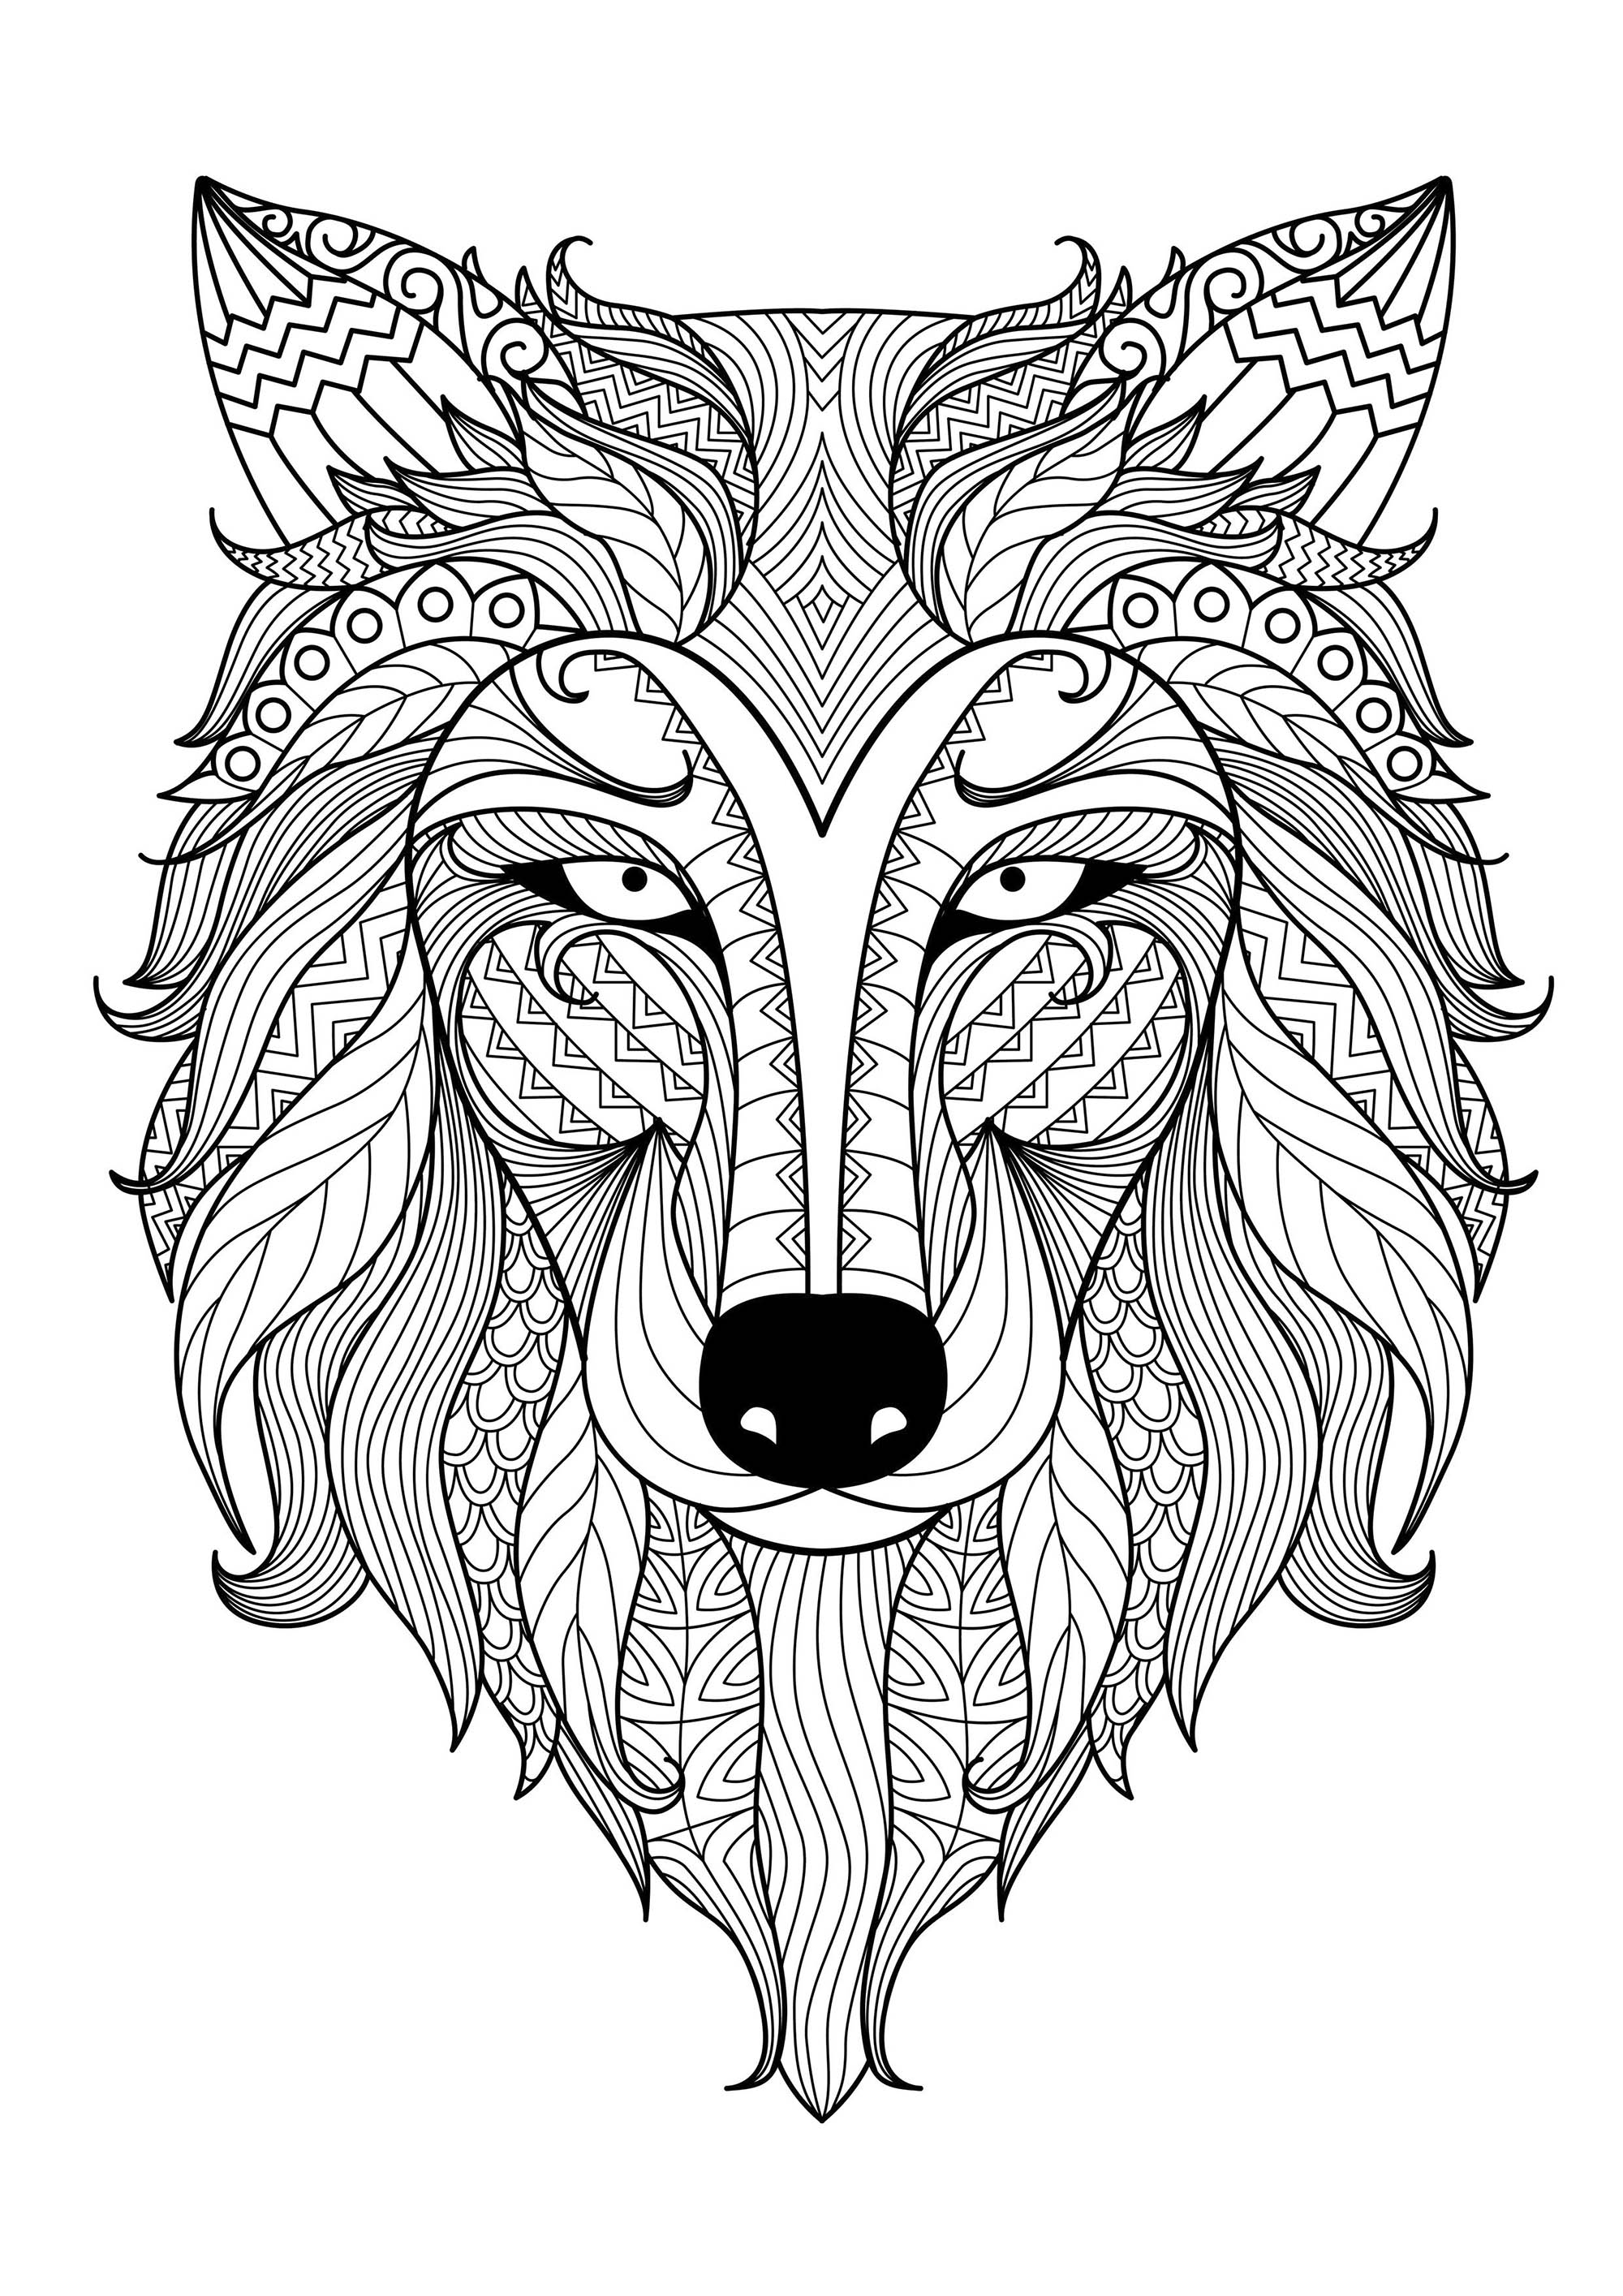 wolf pictures to color and print wolf printable adult coloring pages from favoreads wolf pictures print color and to